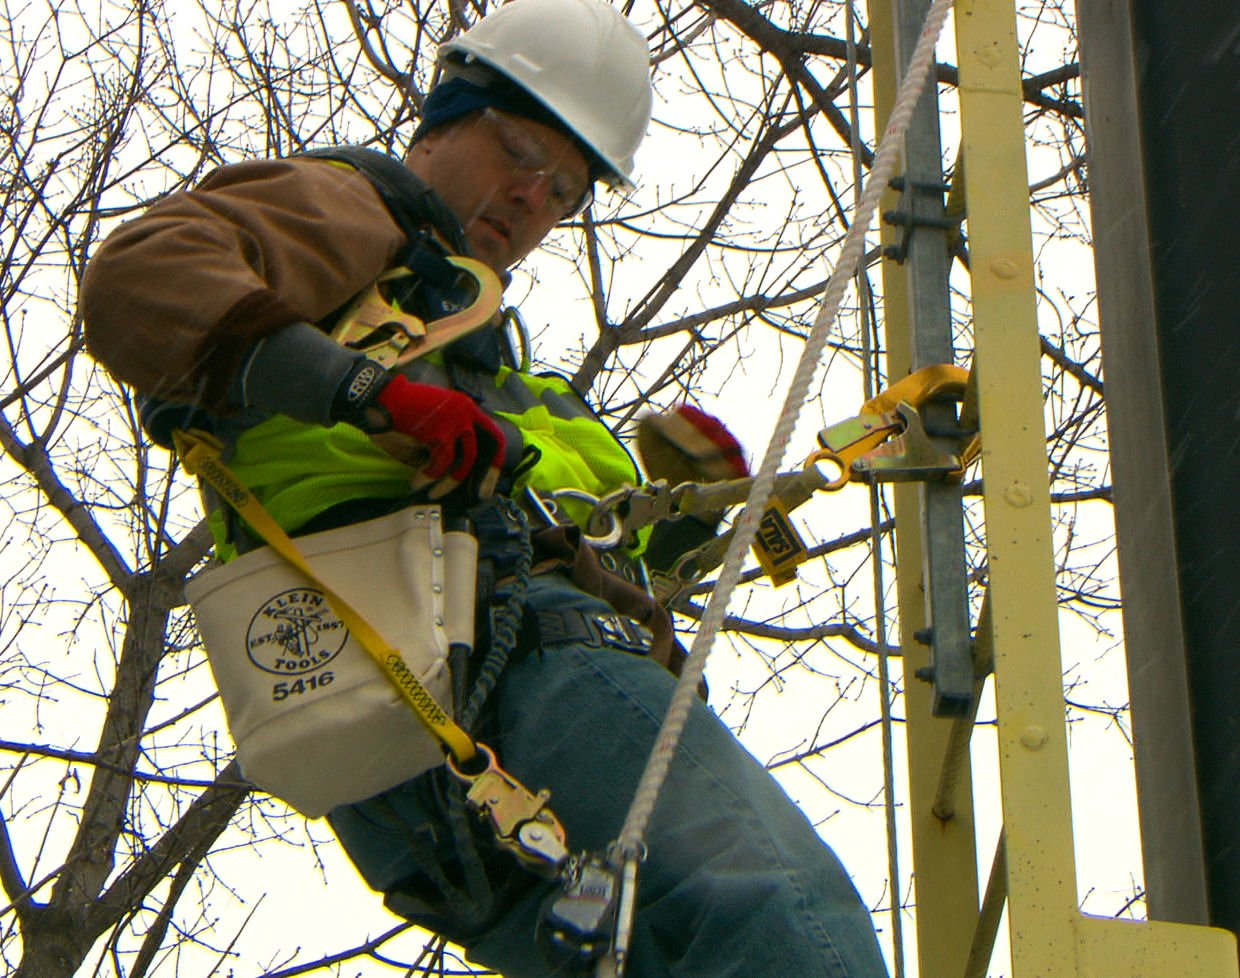 Construction Fall Protection: We All Win DVD